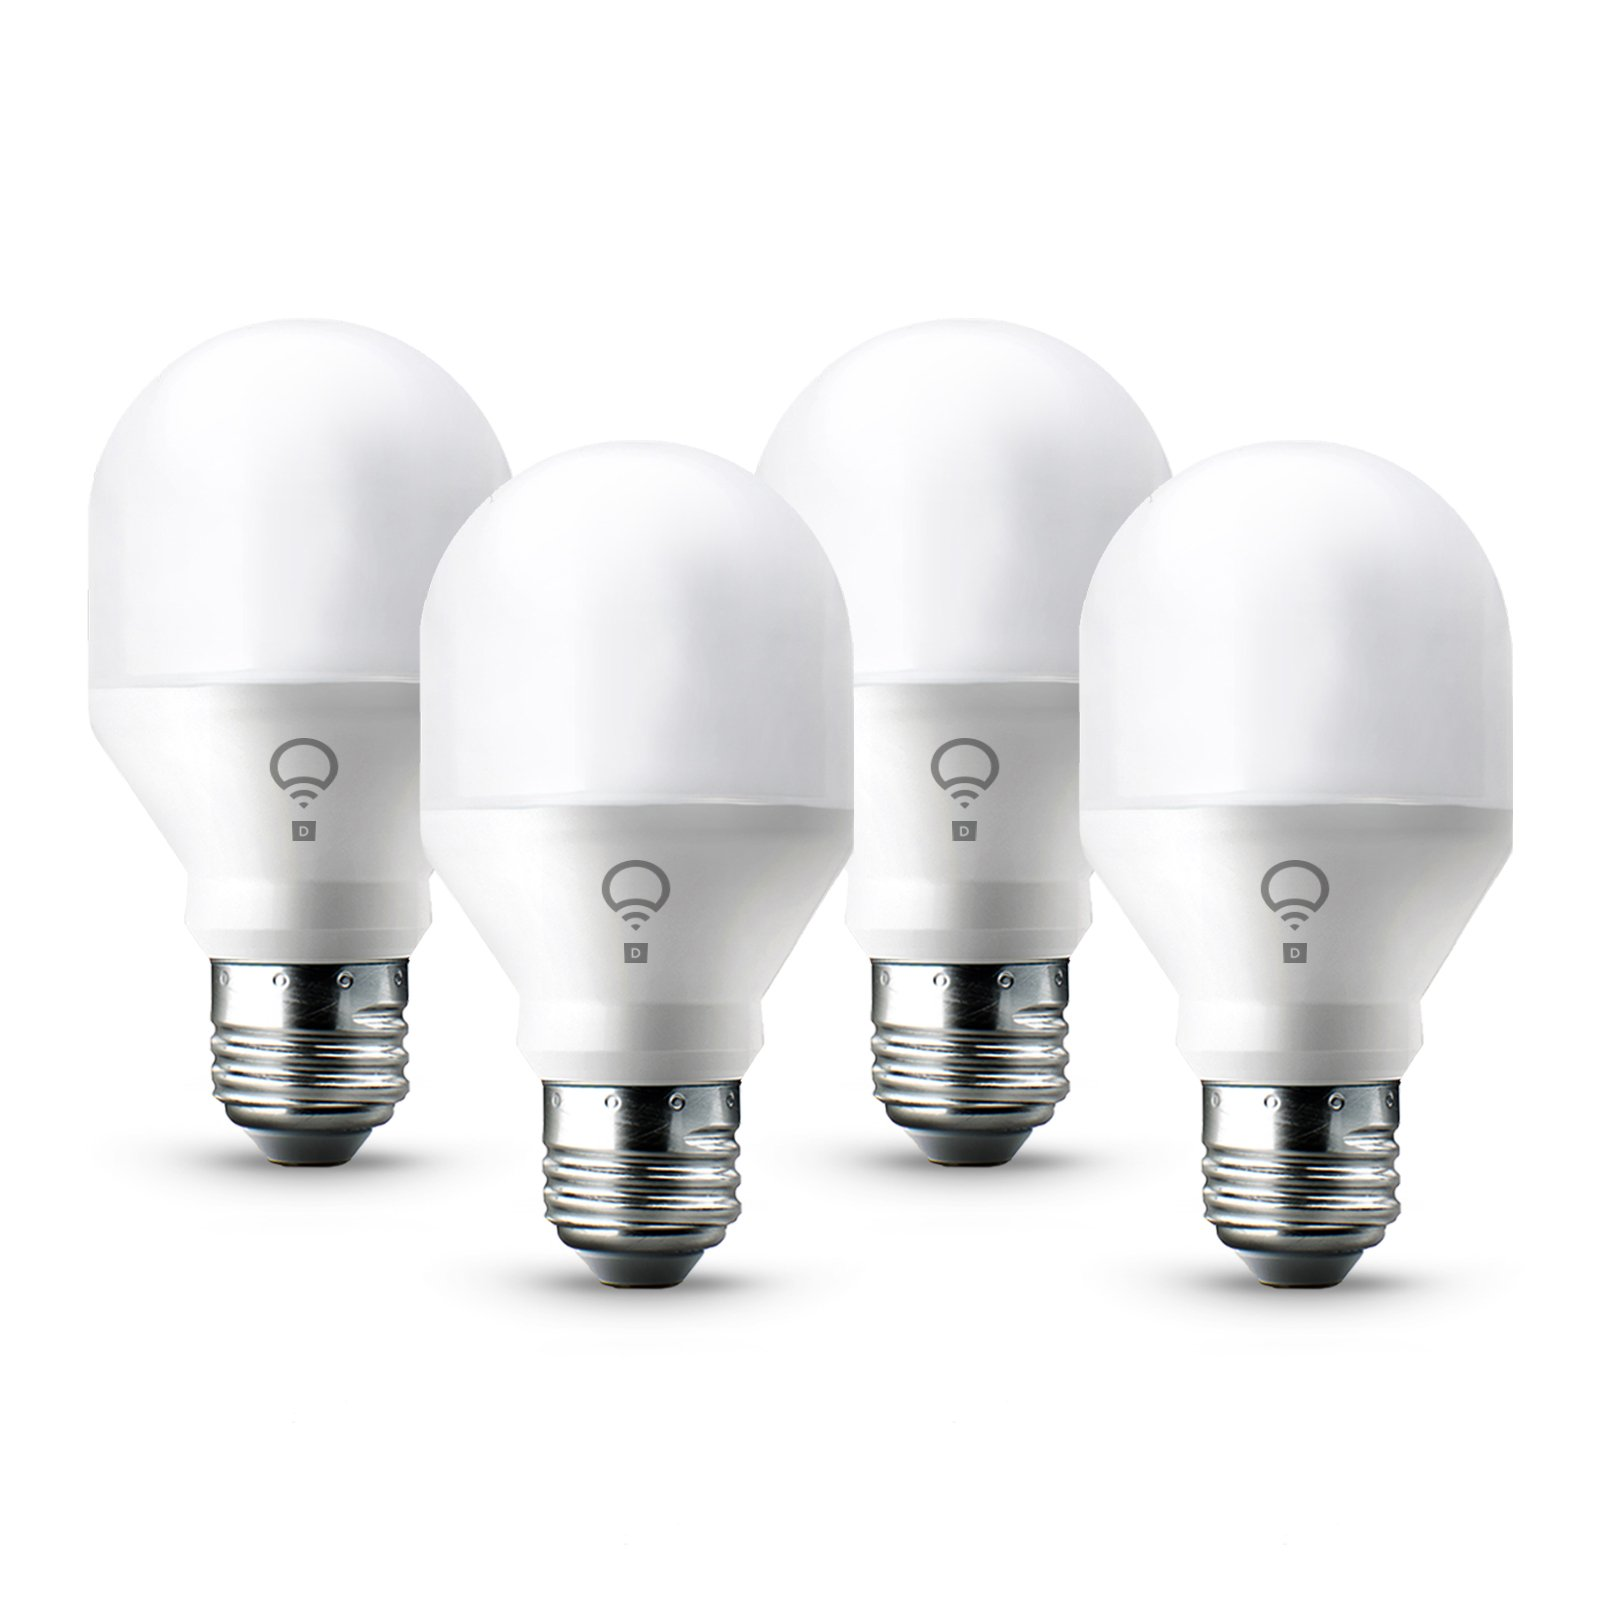 LIFX Mini Day & Dusk (A19) Wi-Fi Smart LED Light Bulb, Adjustable, Dimmable, No Hub Required, Works with Alexa, Apple HomeKit and the Google Assistant, Pack of 4 by LIFX (Image #9)